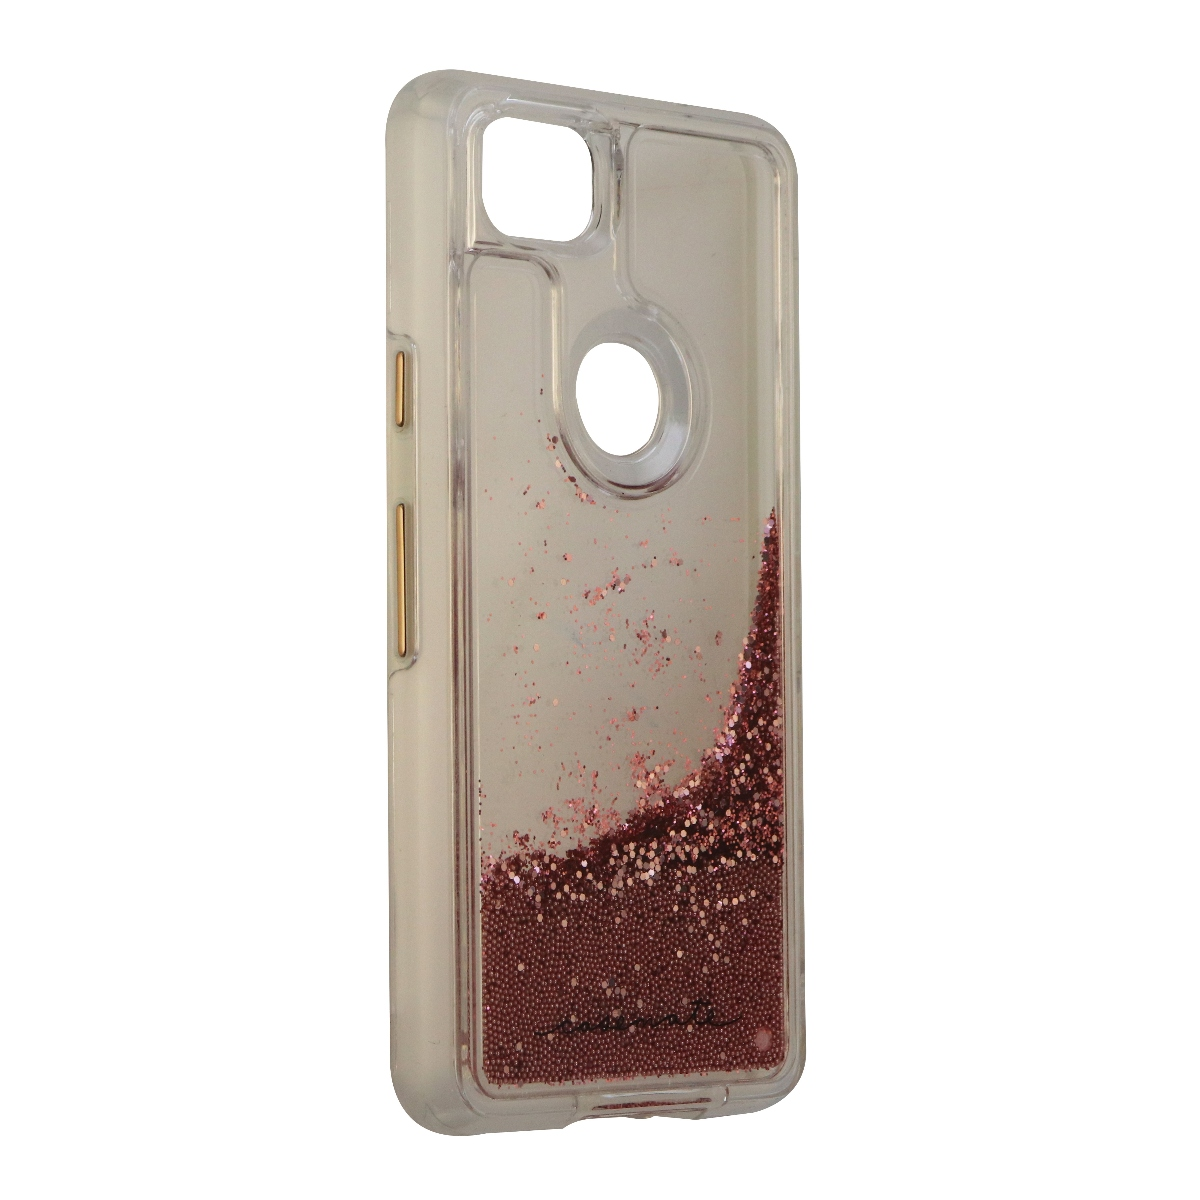 Case-Mate Waterfall Series Case for Google Pixel 2 - Clear/Pink Glitter